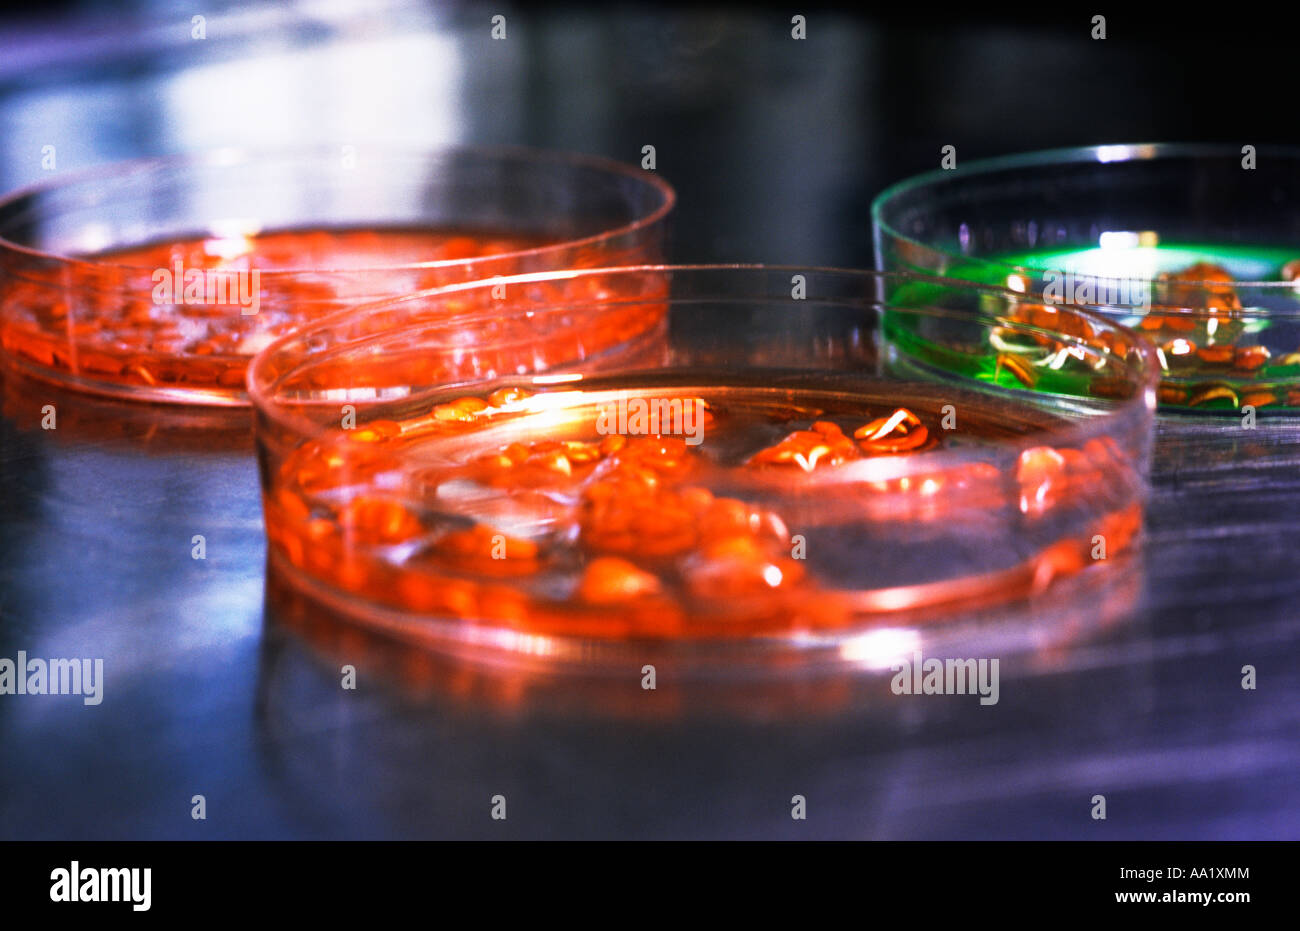 Science Lab Petri Dishes - Stock Image